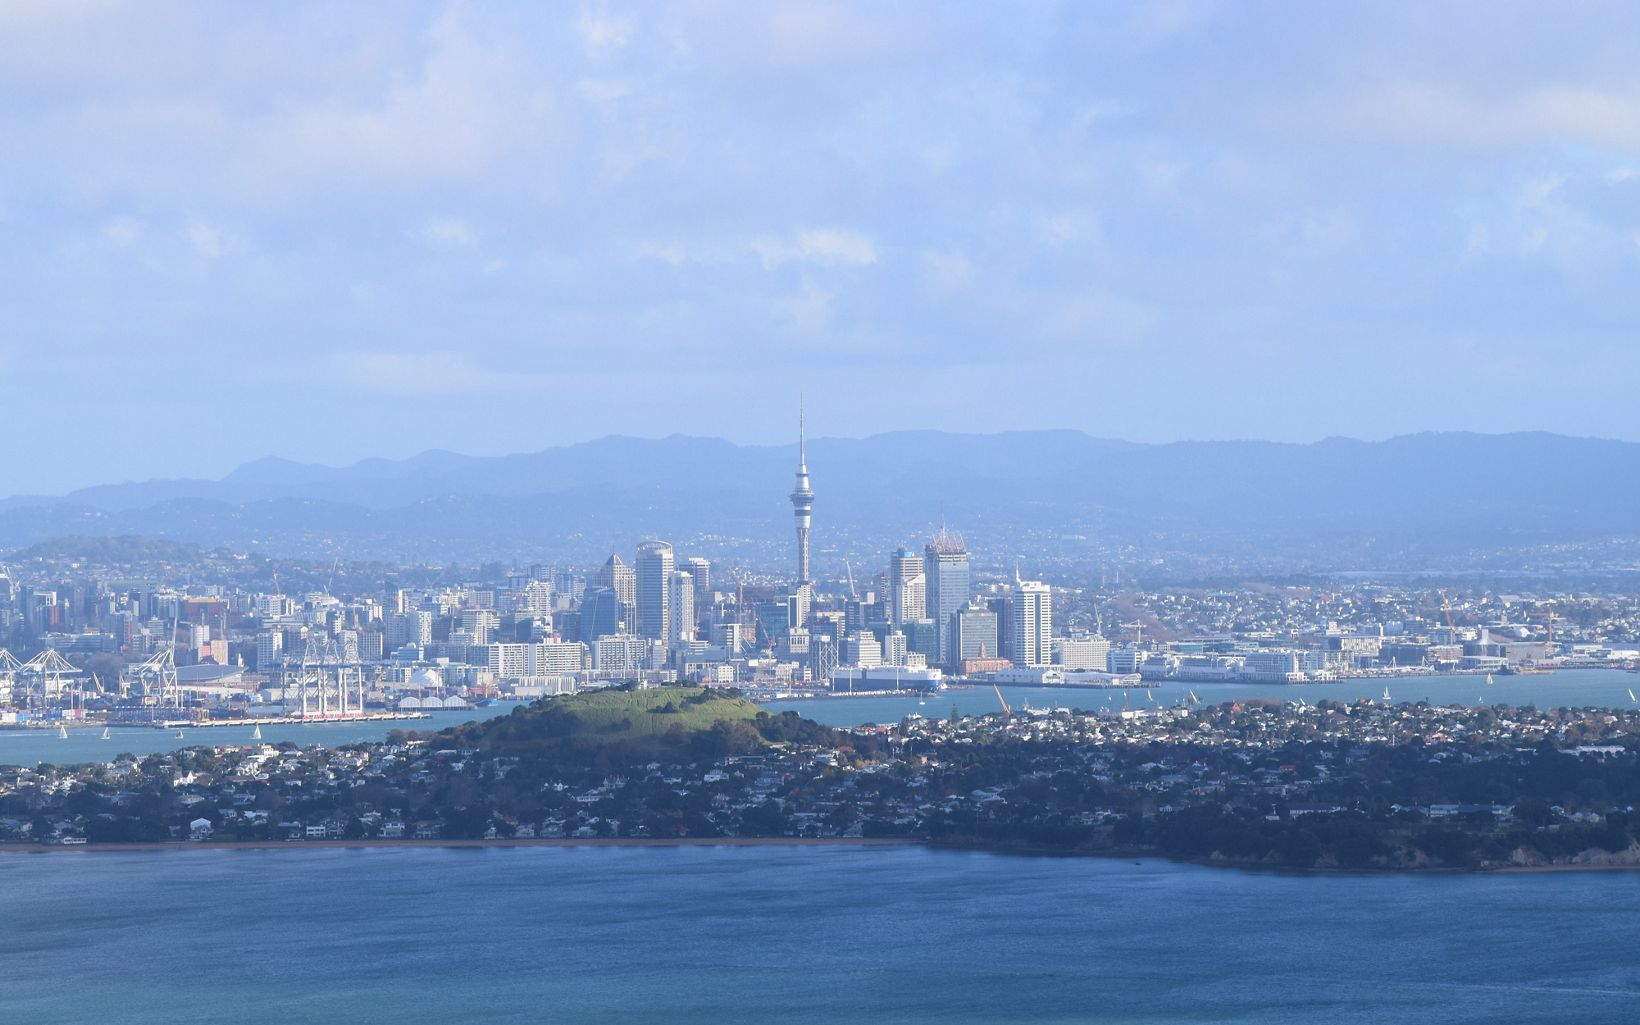 Based in Auckland, the Hauraki Gulf Forum is a statutory body which promotes and facilitates integrated management and the protection and enhancement of the Gulf.